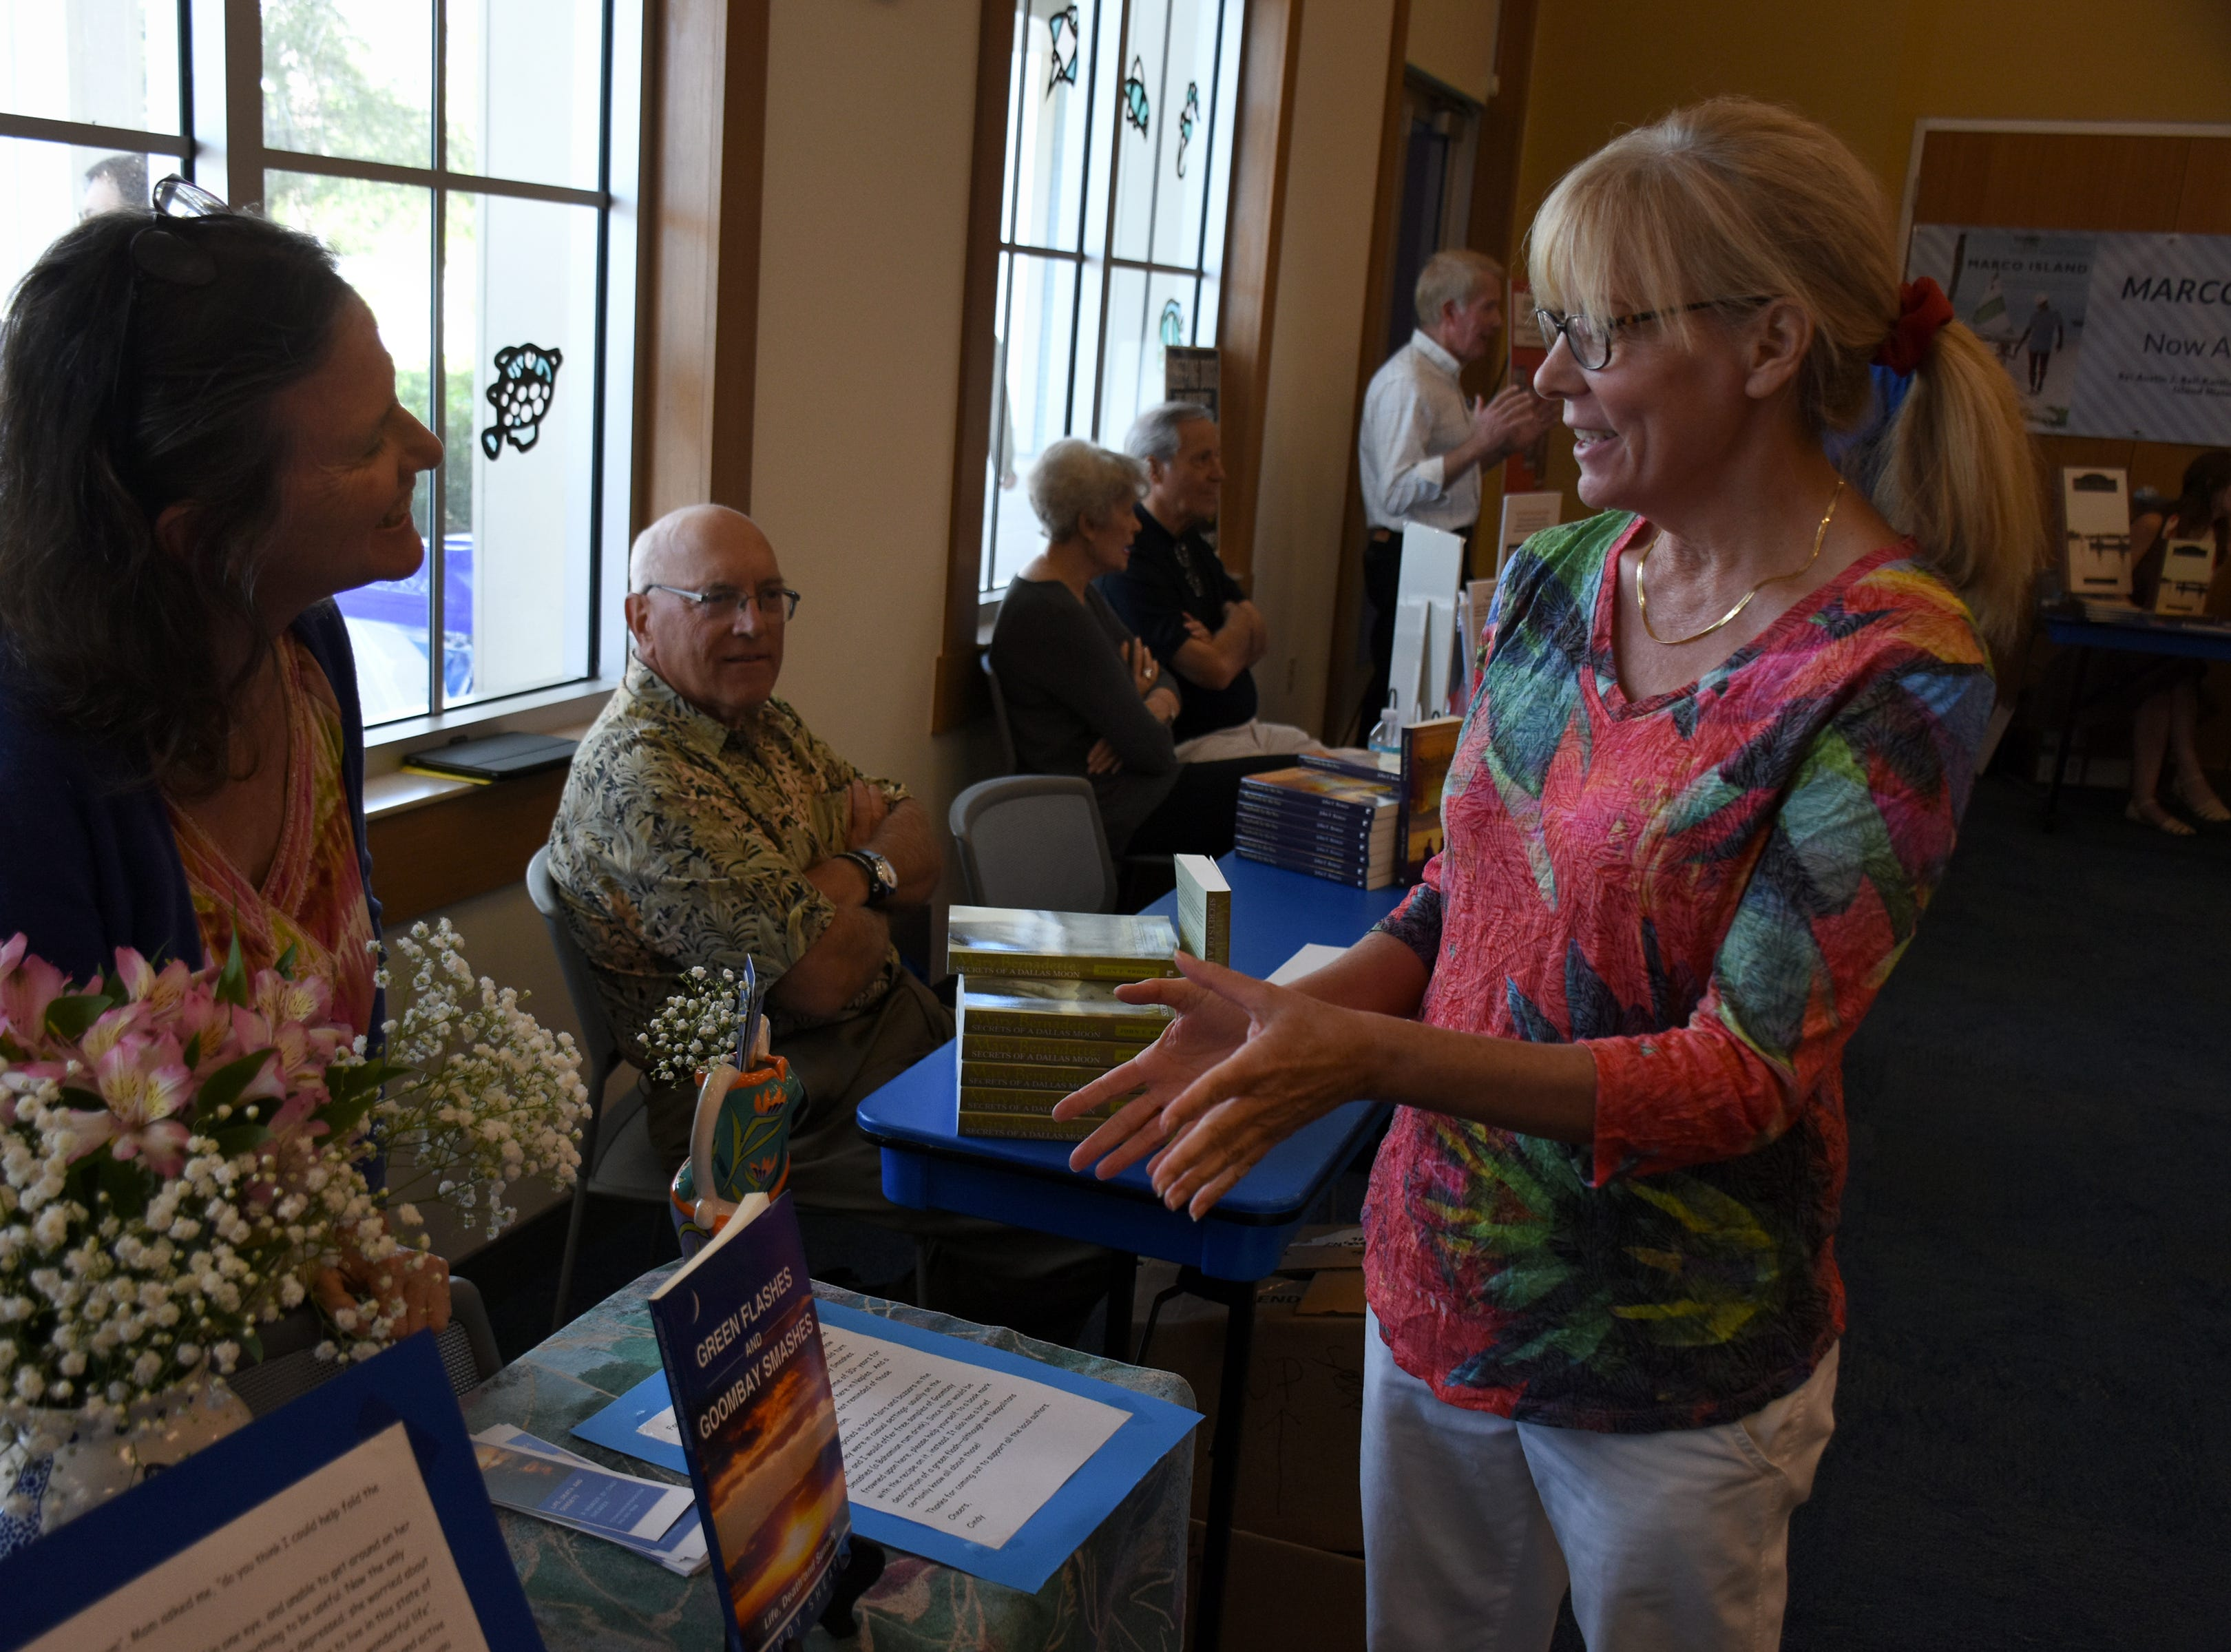 Author Cindy Shearer, left, talks with Janice Gilbert. The Collier County public library system hosted an author fair Saturday at the South Regional library branch, with nearly four dozen local writers and talks from two eminent authors.